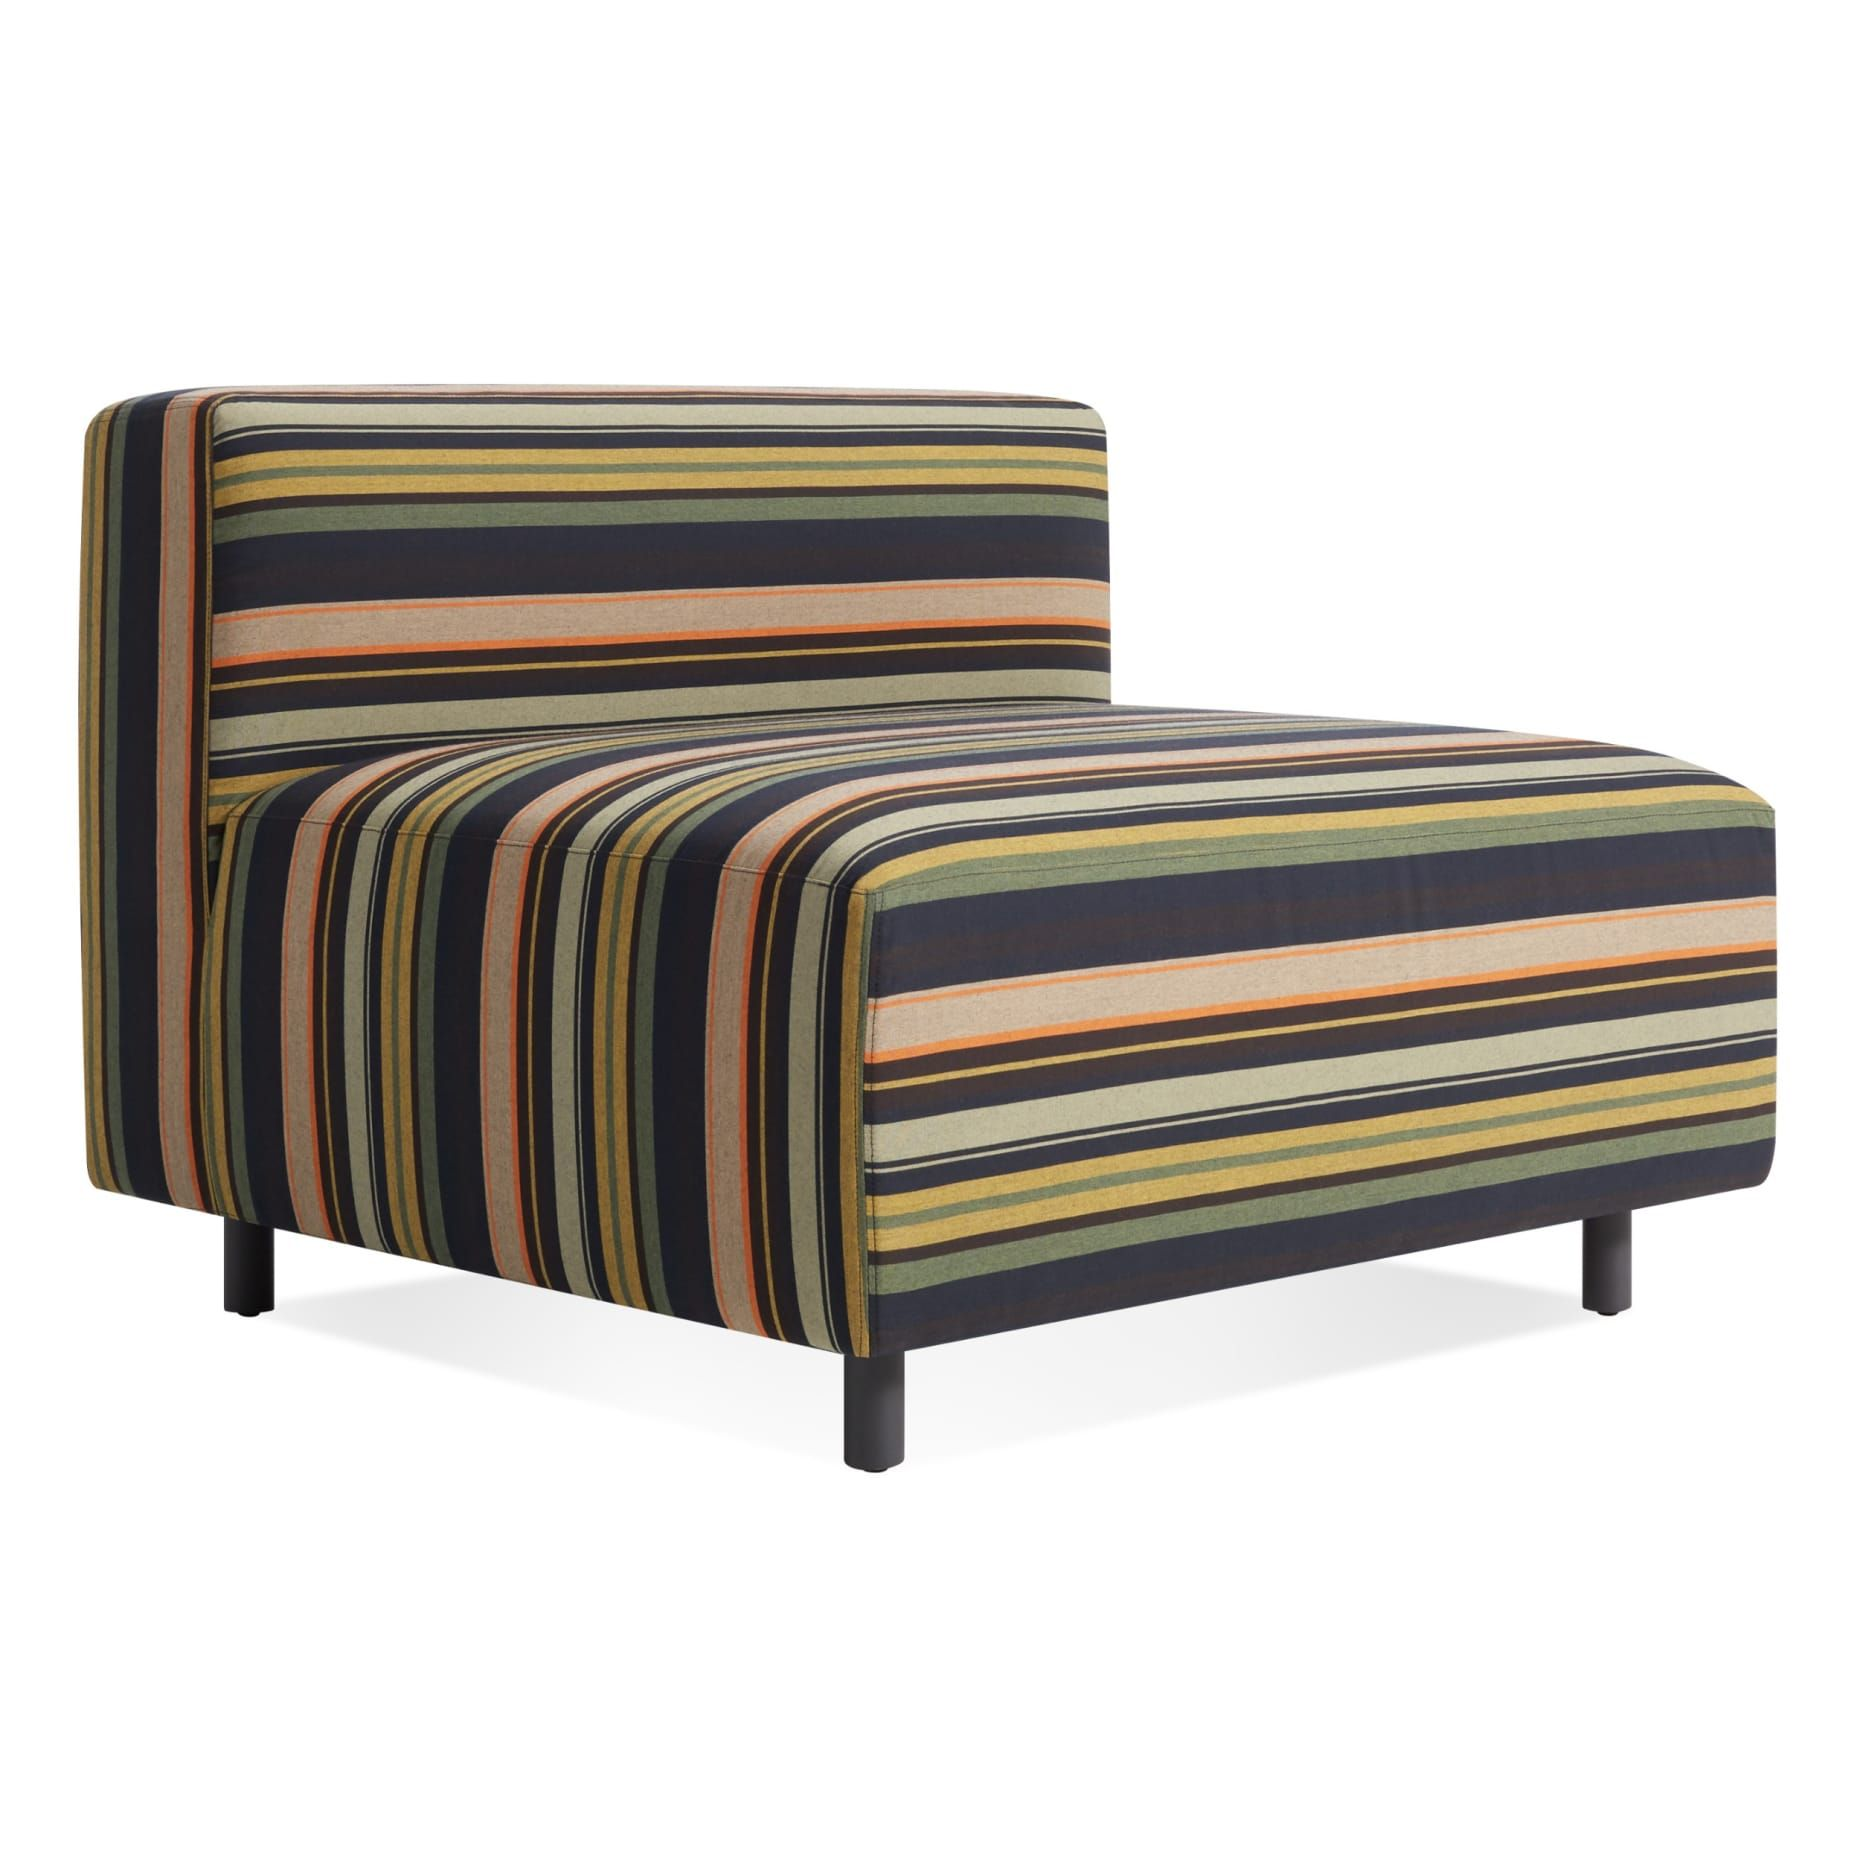 armless lounge chair outdoor